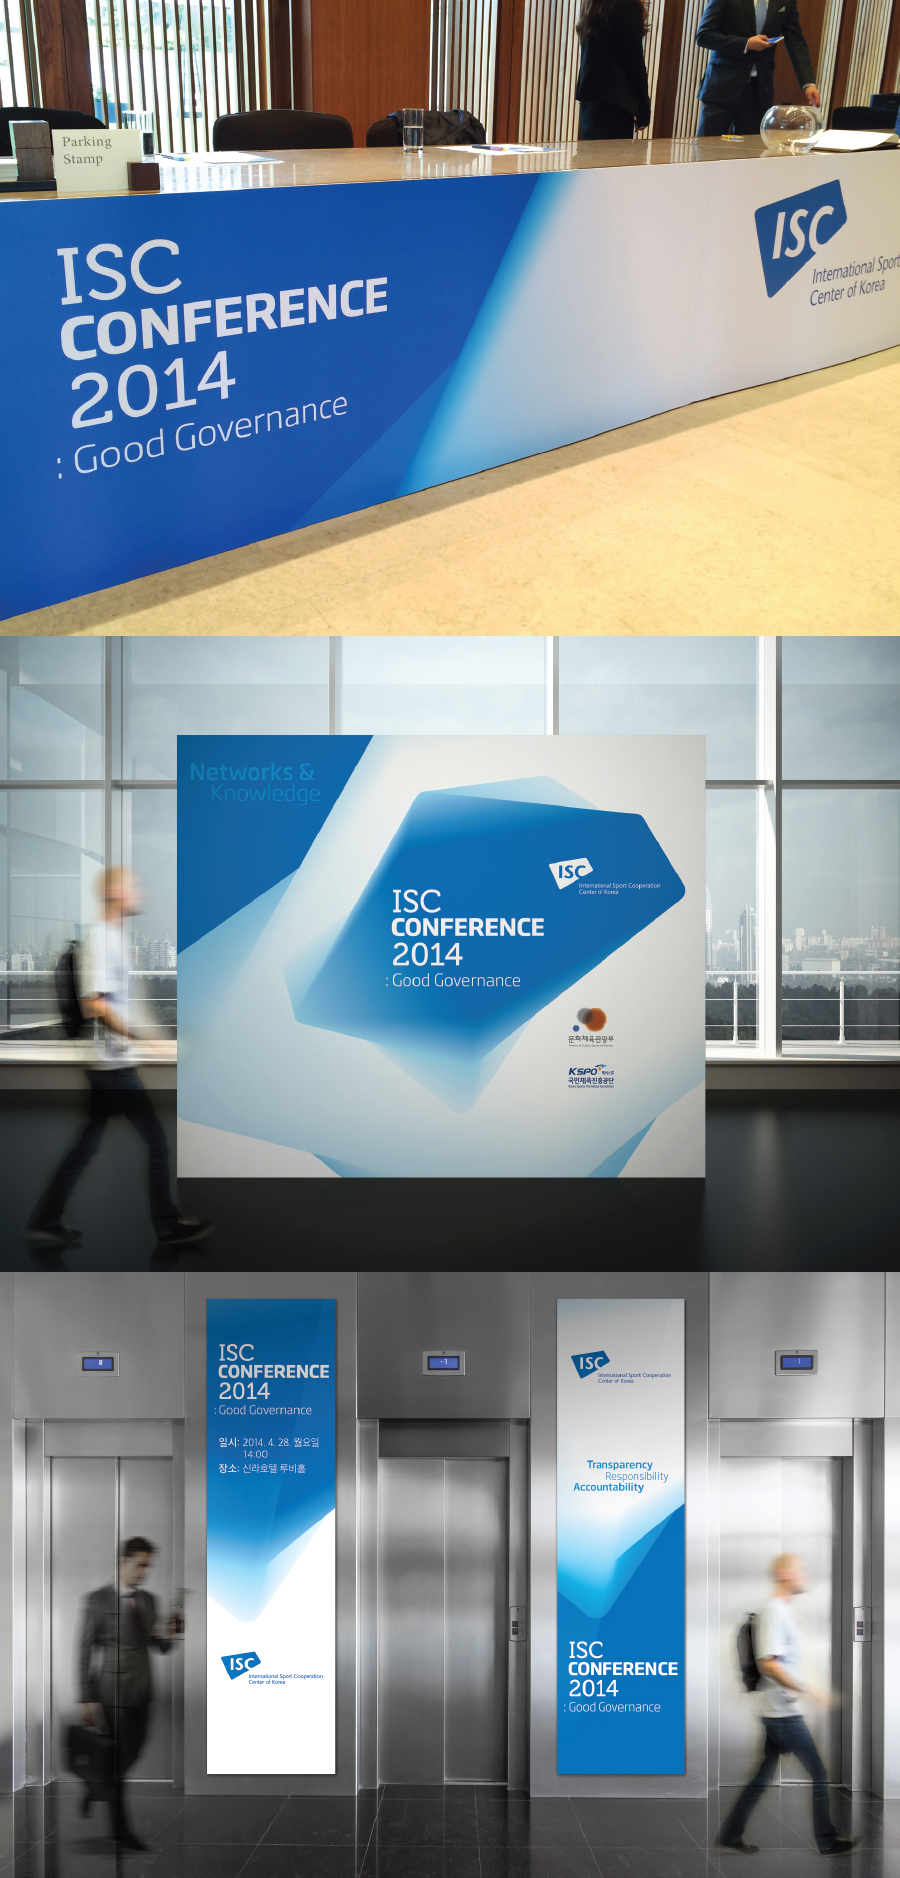 ISC-Conference-si-total-900_02